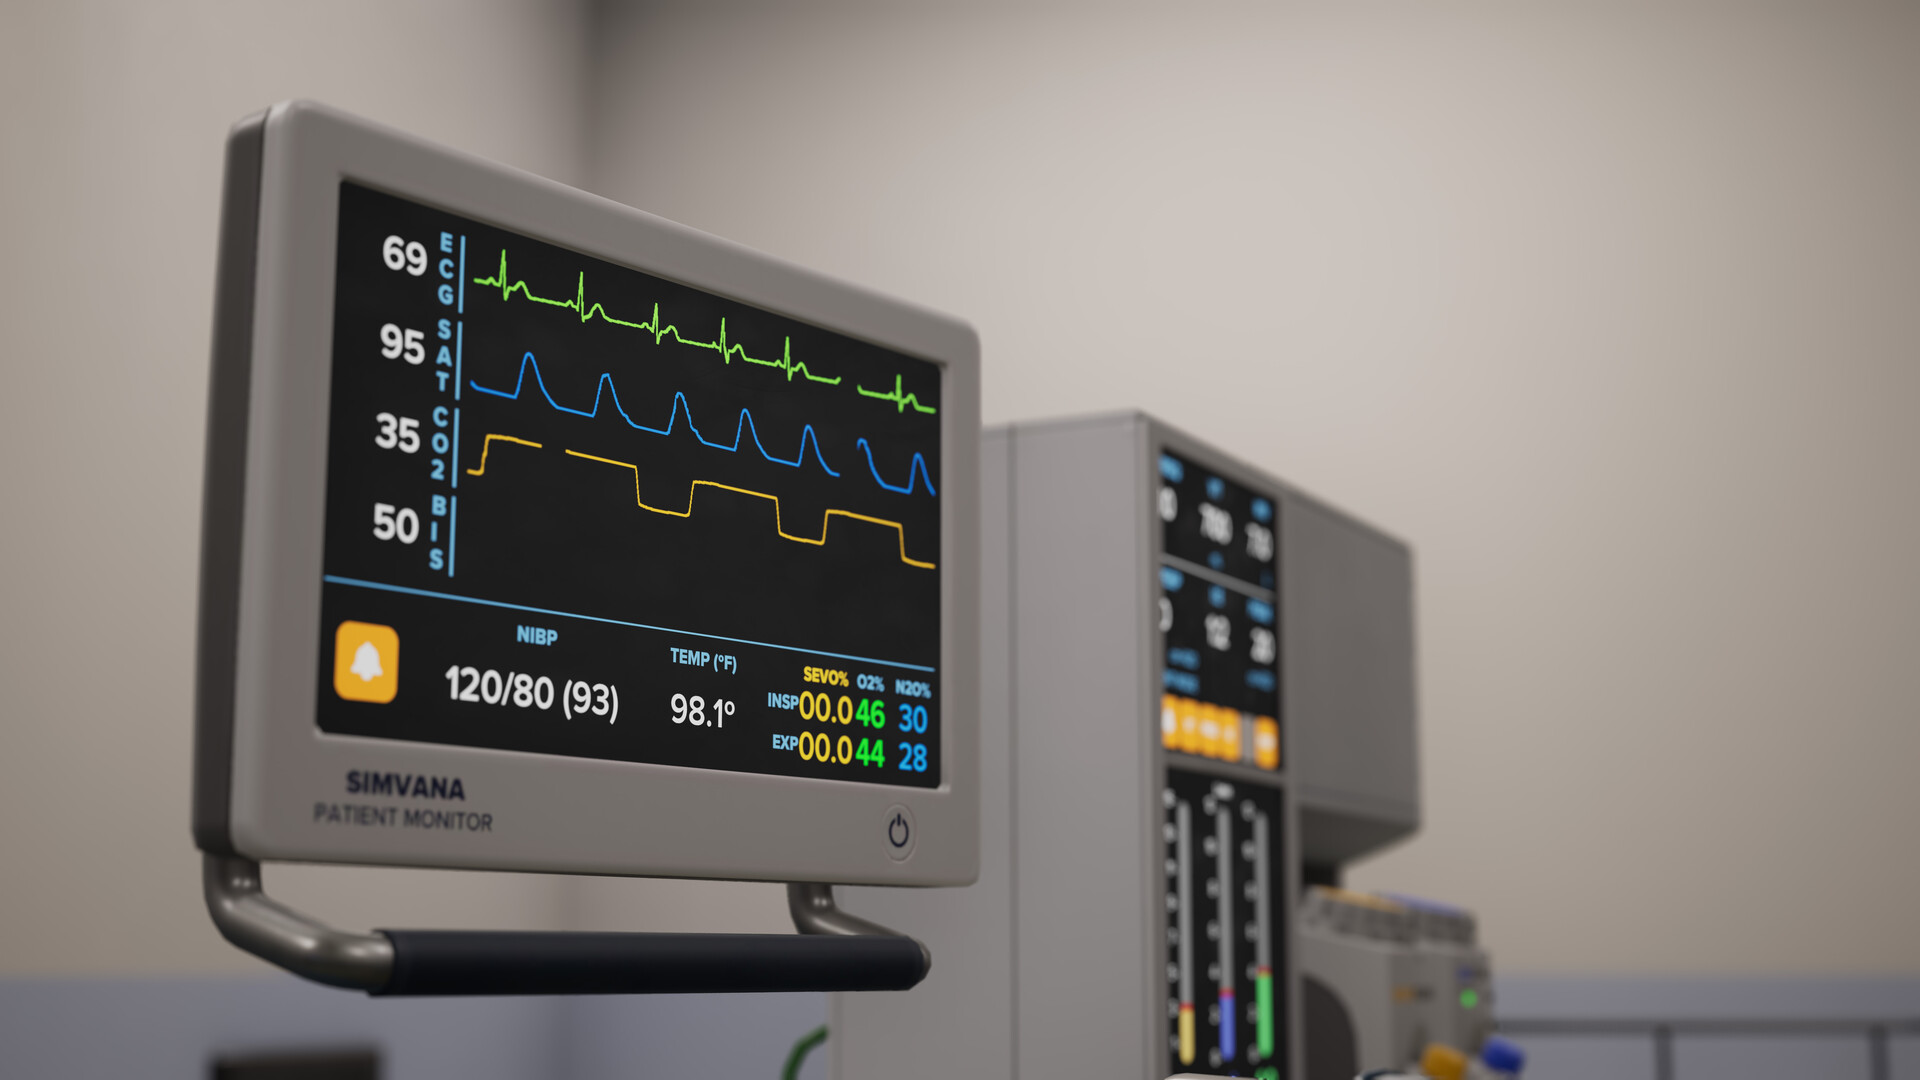 I was responsible for prototyping the custom functionality to draw the patient monitor graphs in real time during the simulation.